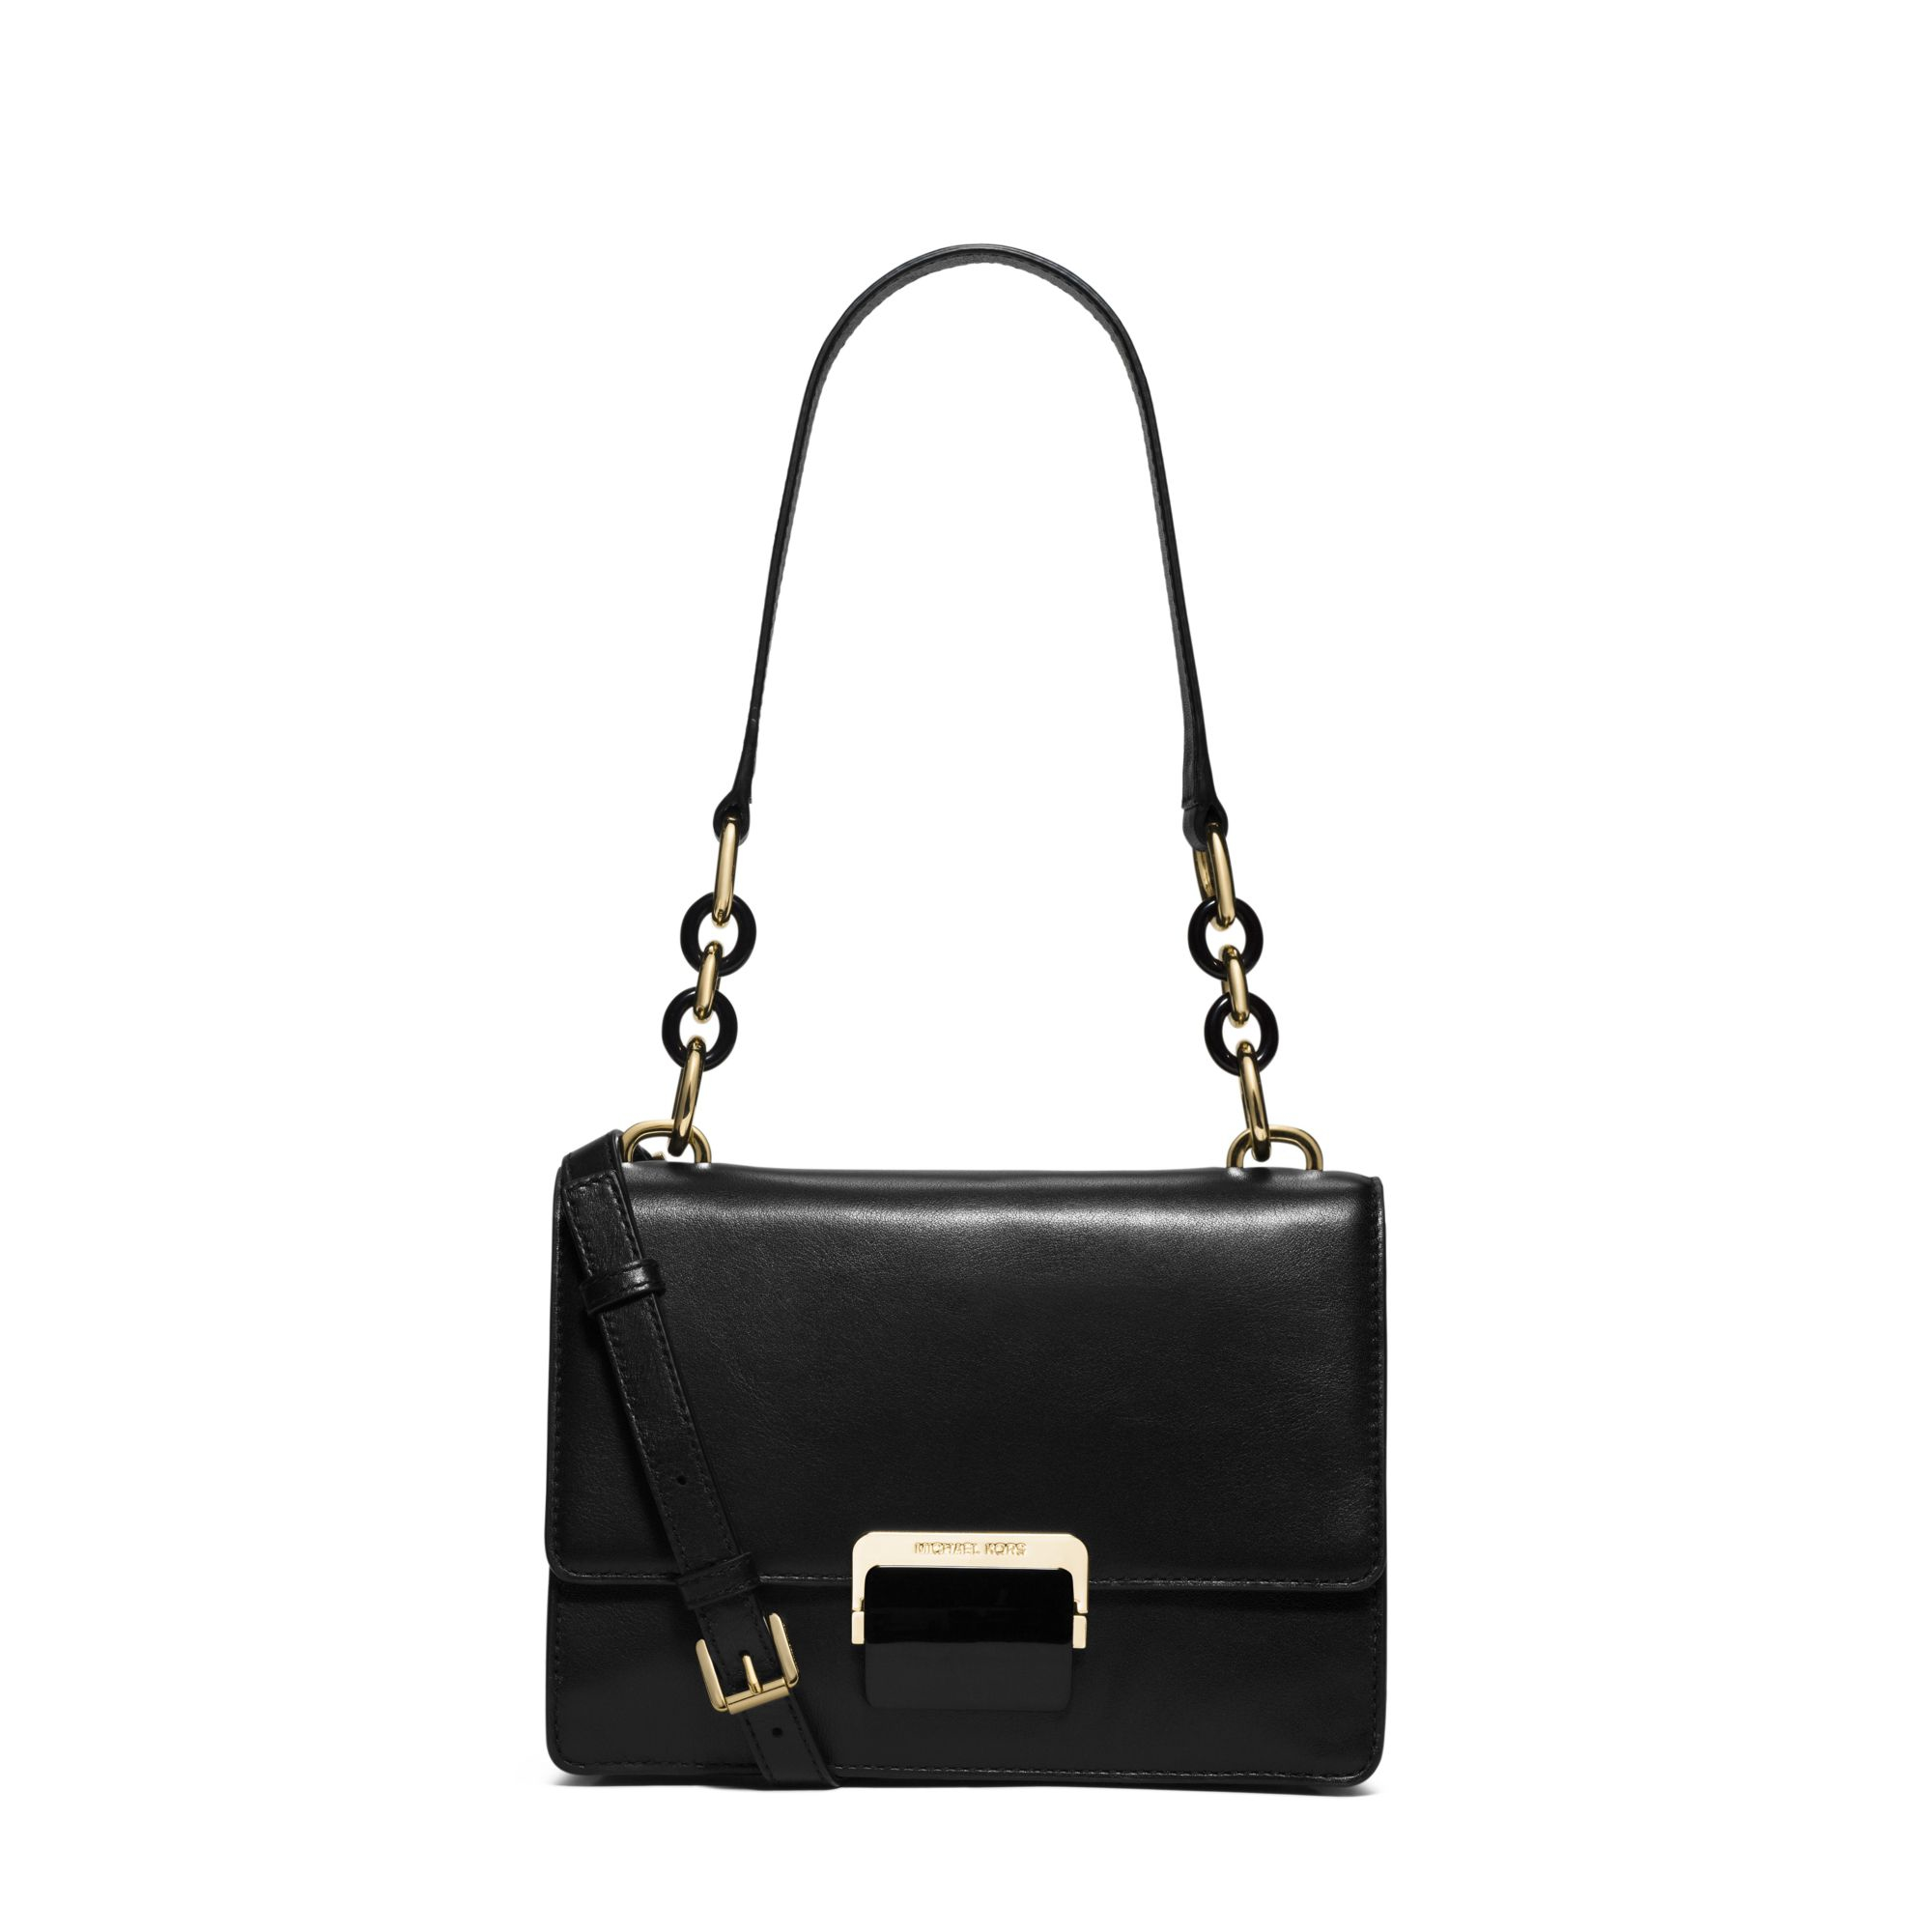 Michael kors Cynthia Small Leather Shoulder Bag in Black | Lyst